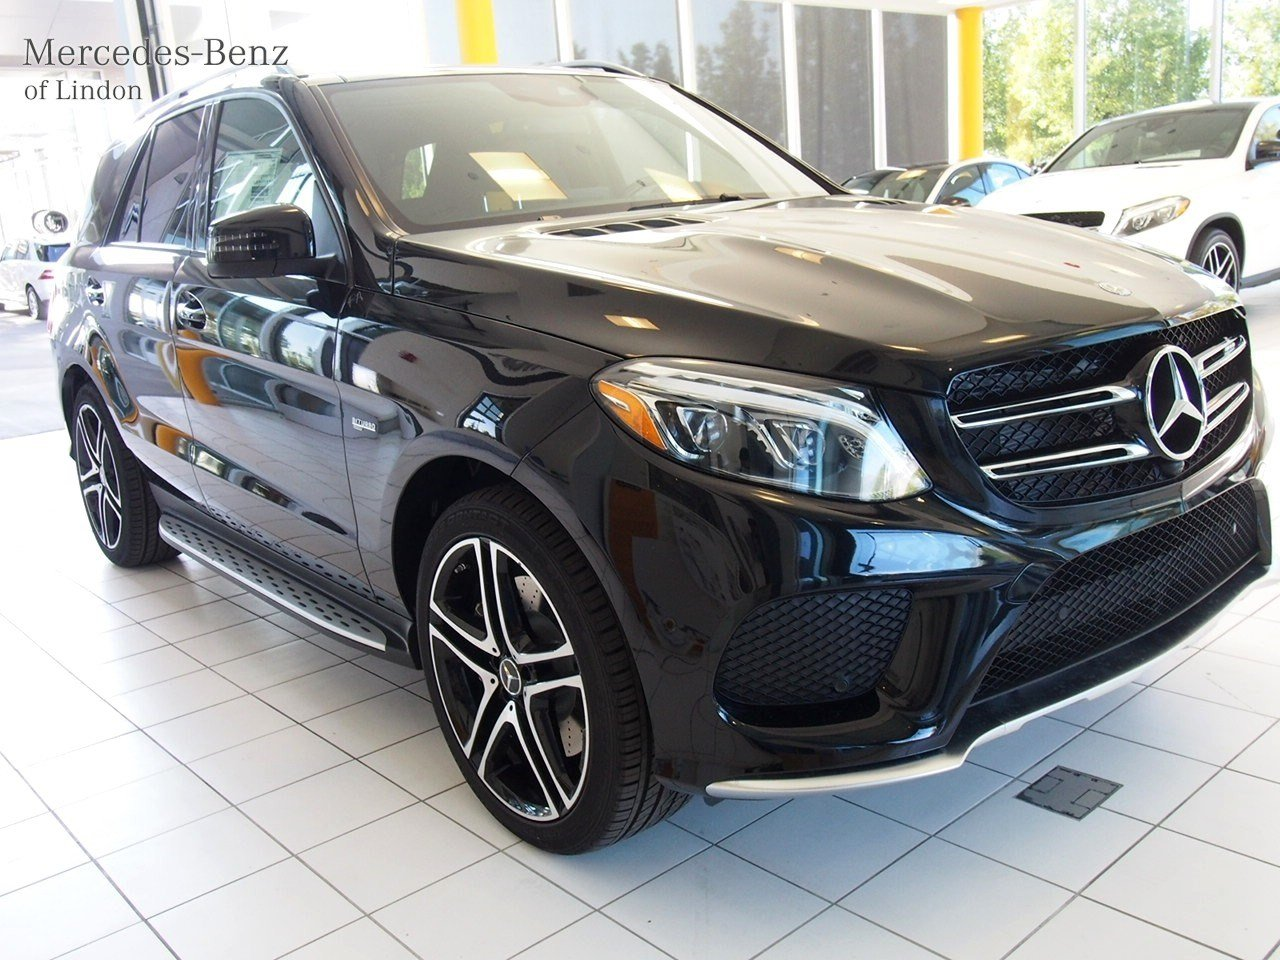 Mercedes benz amg suv new 2018 mercedes benz gle amg gle 43 4matic suv in lindon